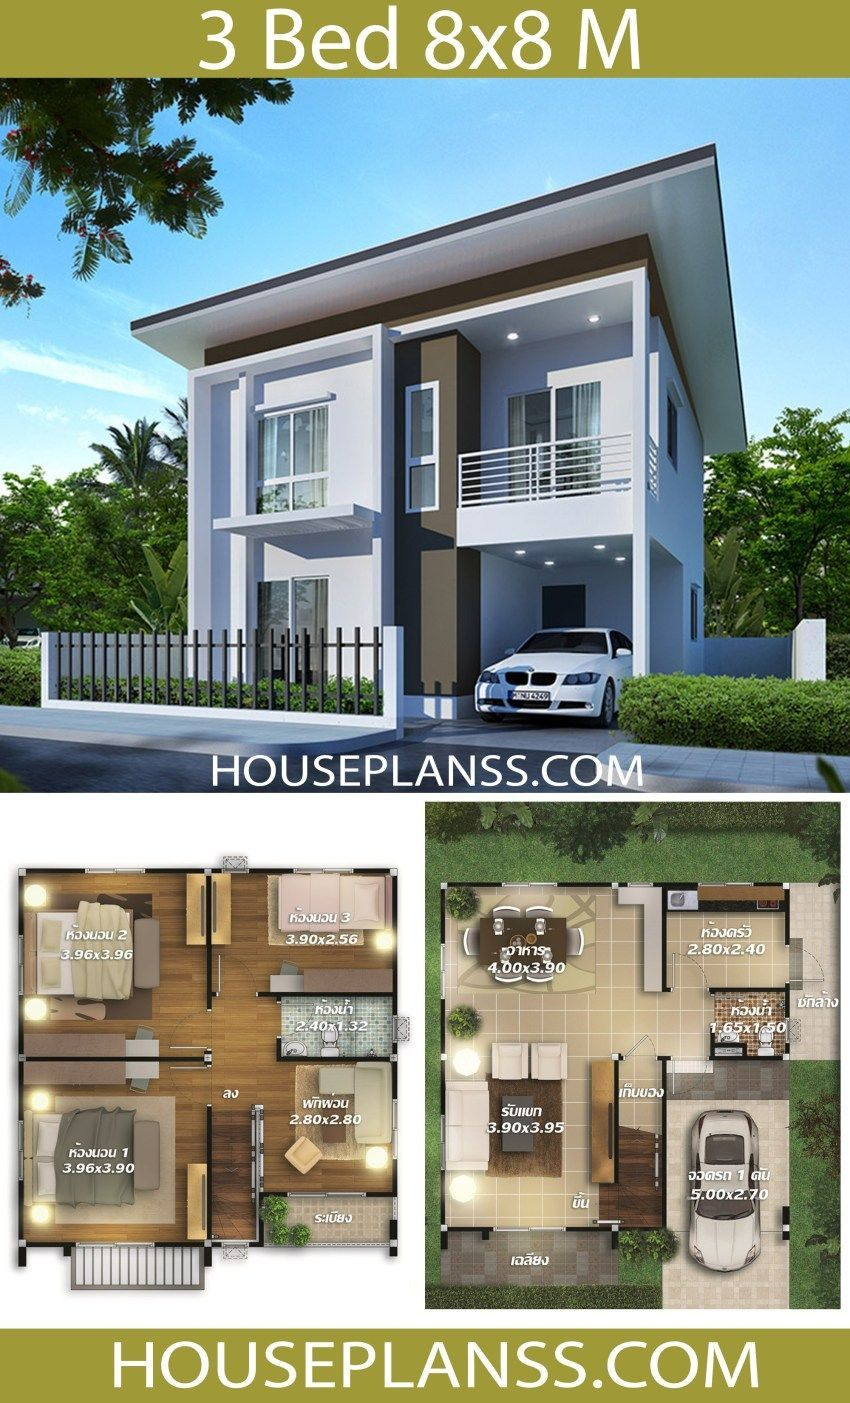 House Plans 8x8 With 3 Bedrooms In 2021 House Construction Plan House Plan Gallery Small Modern House Plans